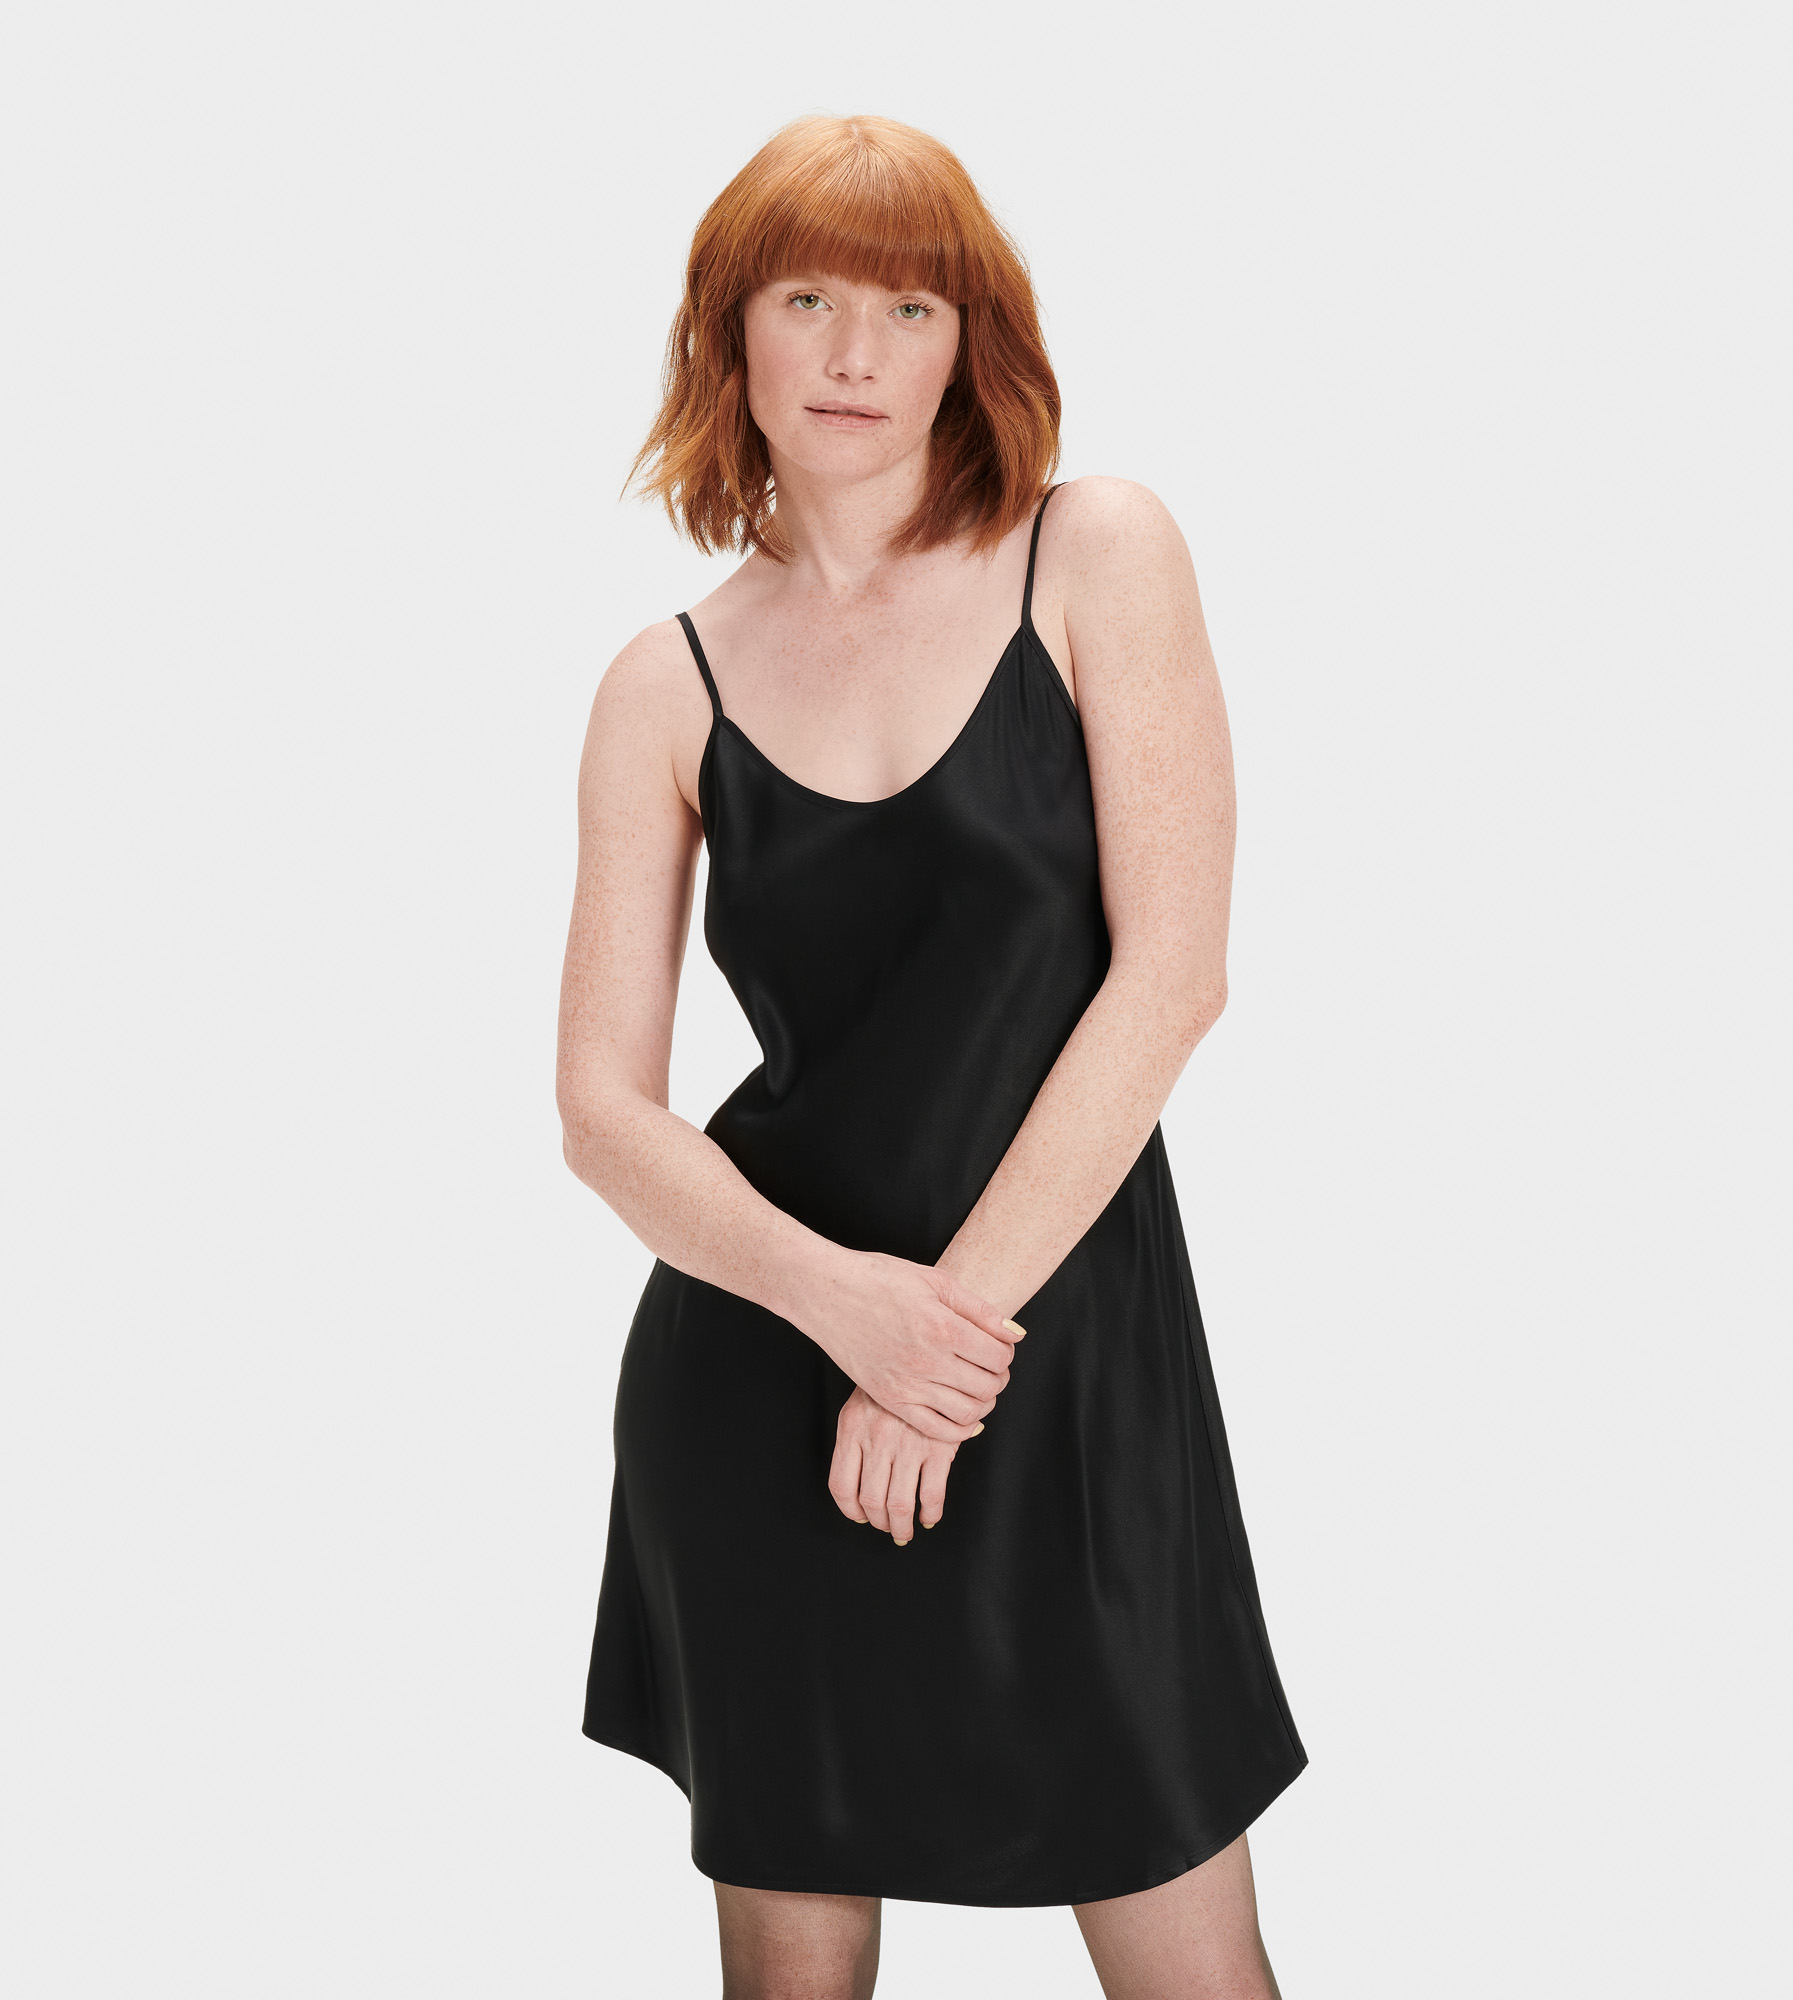 UGG Women's Theda Slip Dress Silk Dresses in Black, Size M Made from 100% silk, this soft slip dress features adjustable slider straps for the perfect fit. Ideal for wearing out, you'll love the way the smooth silk feels on your skin. 100% Silk Slip Dress. Adjustable straps with sliders. Center back 25 1/4  [Size S]. Dry Clean Only. UGG Women's Theda Slip Dress Silk Dresses in Black, Size M